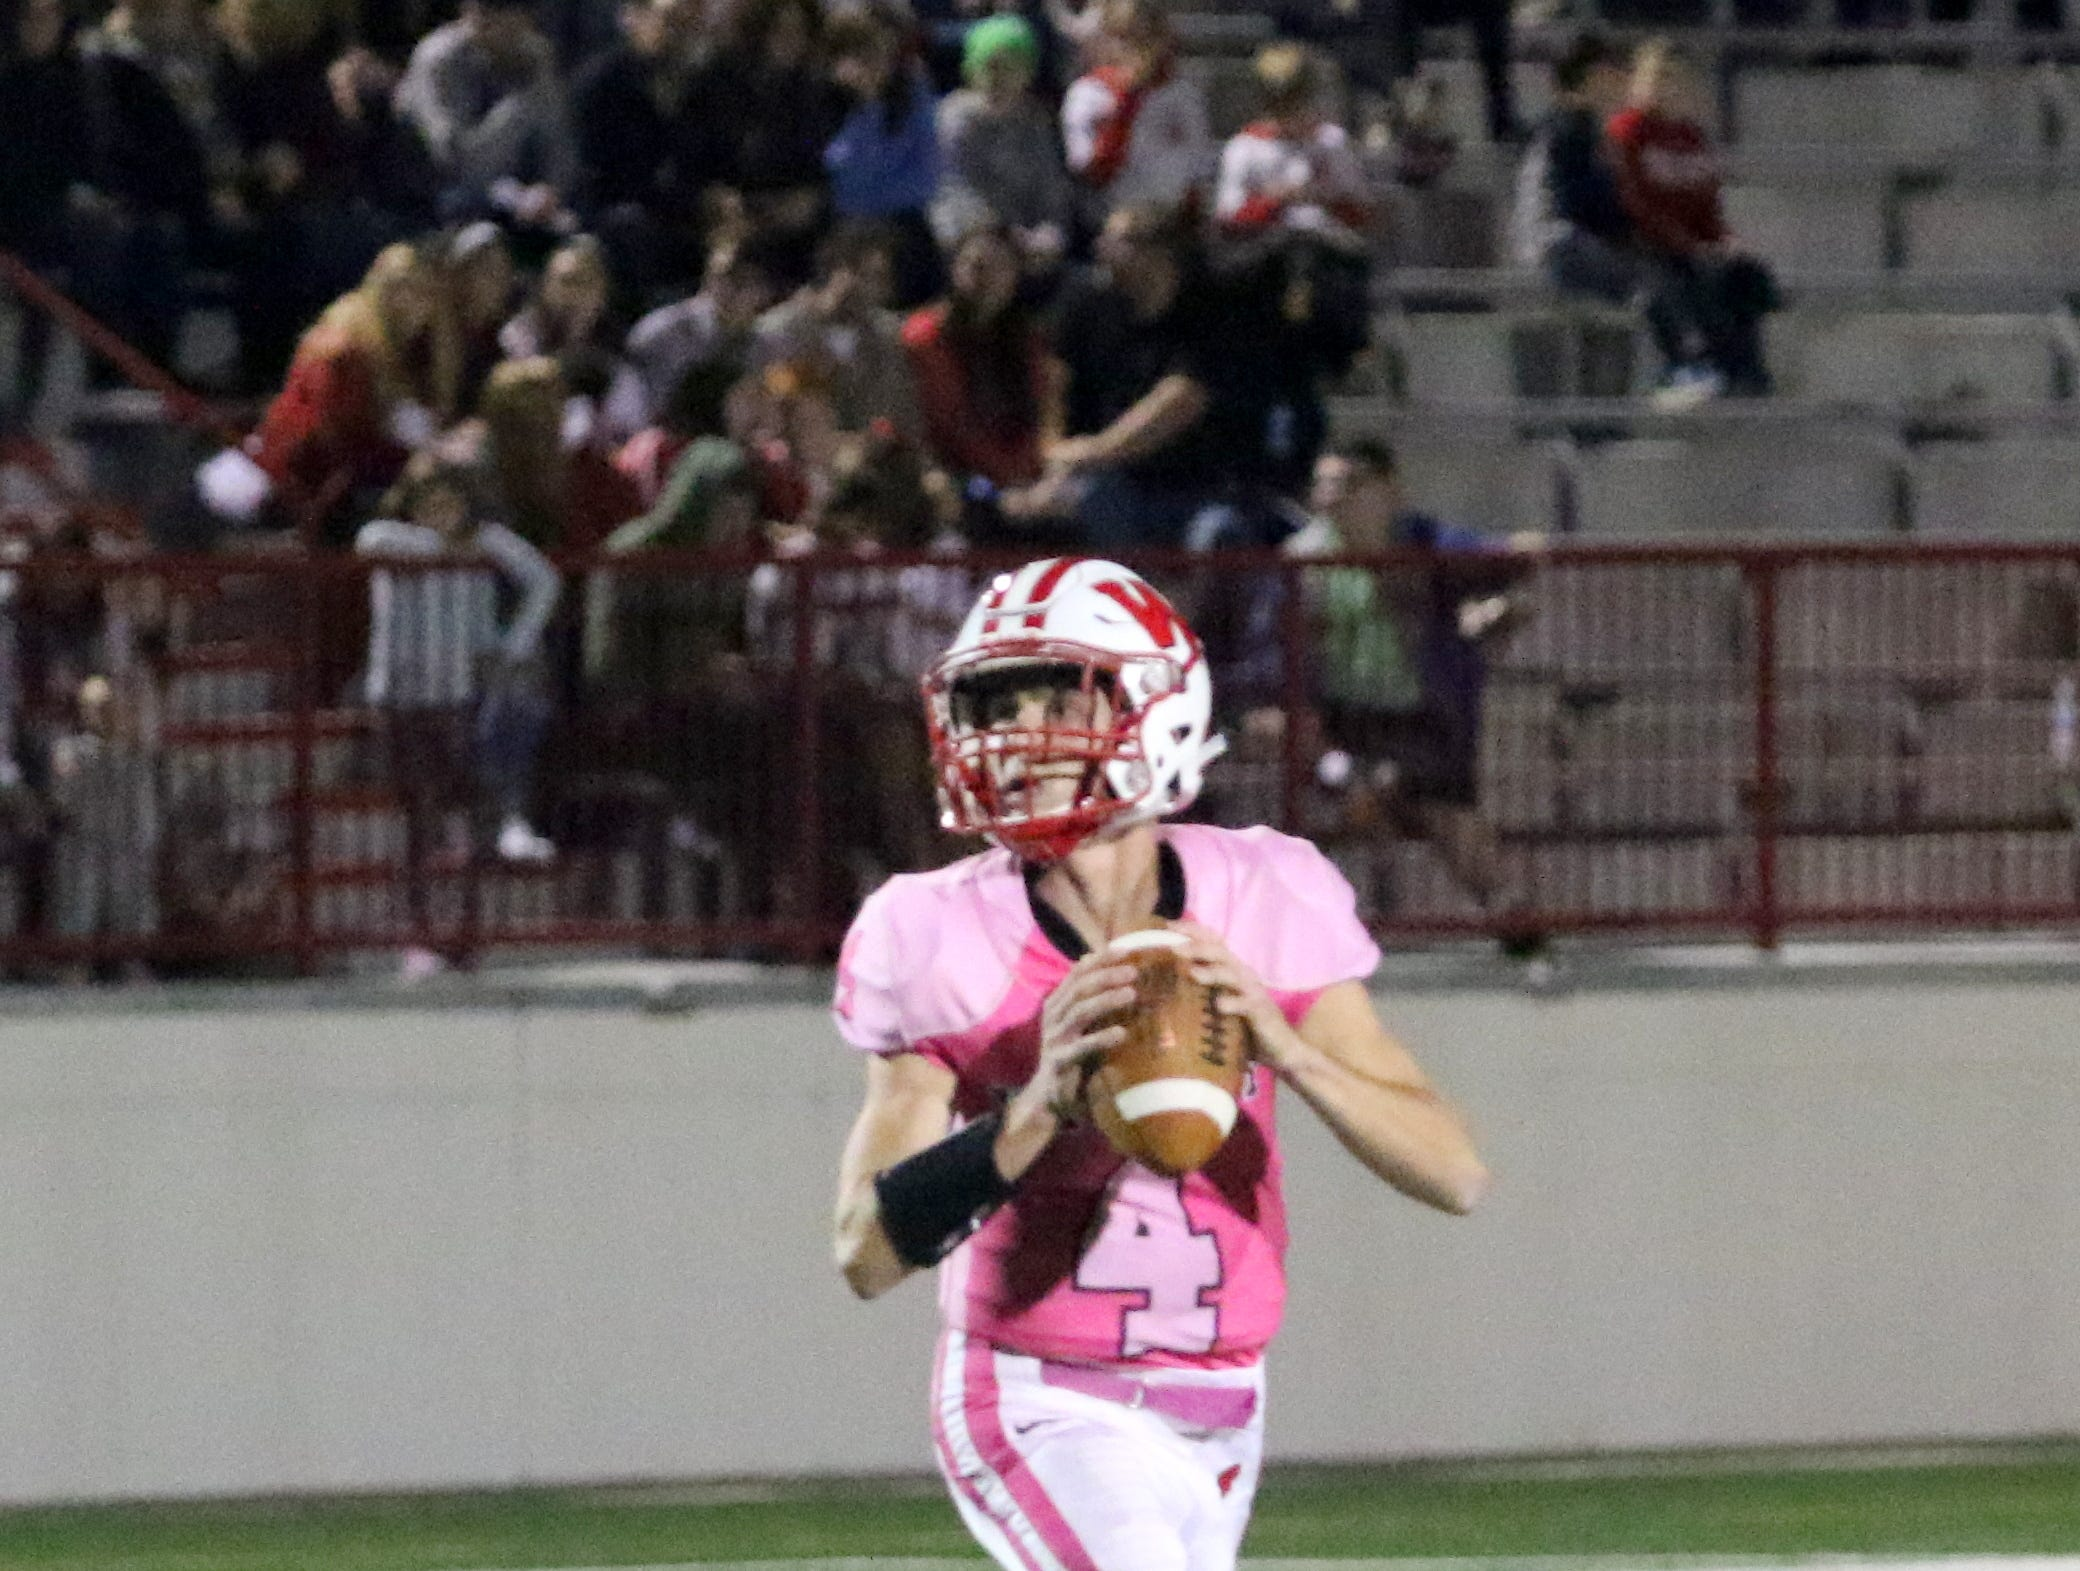 Waverly was a 30-14 winner over Dryden in football Oct. 5, 2018 at Waverly Memorial Stadium. It was homecoming for Waverly, which wore pink uniforms in support of Breast Cancer Awareness Month.